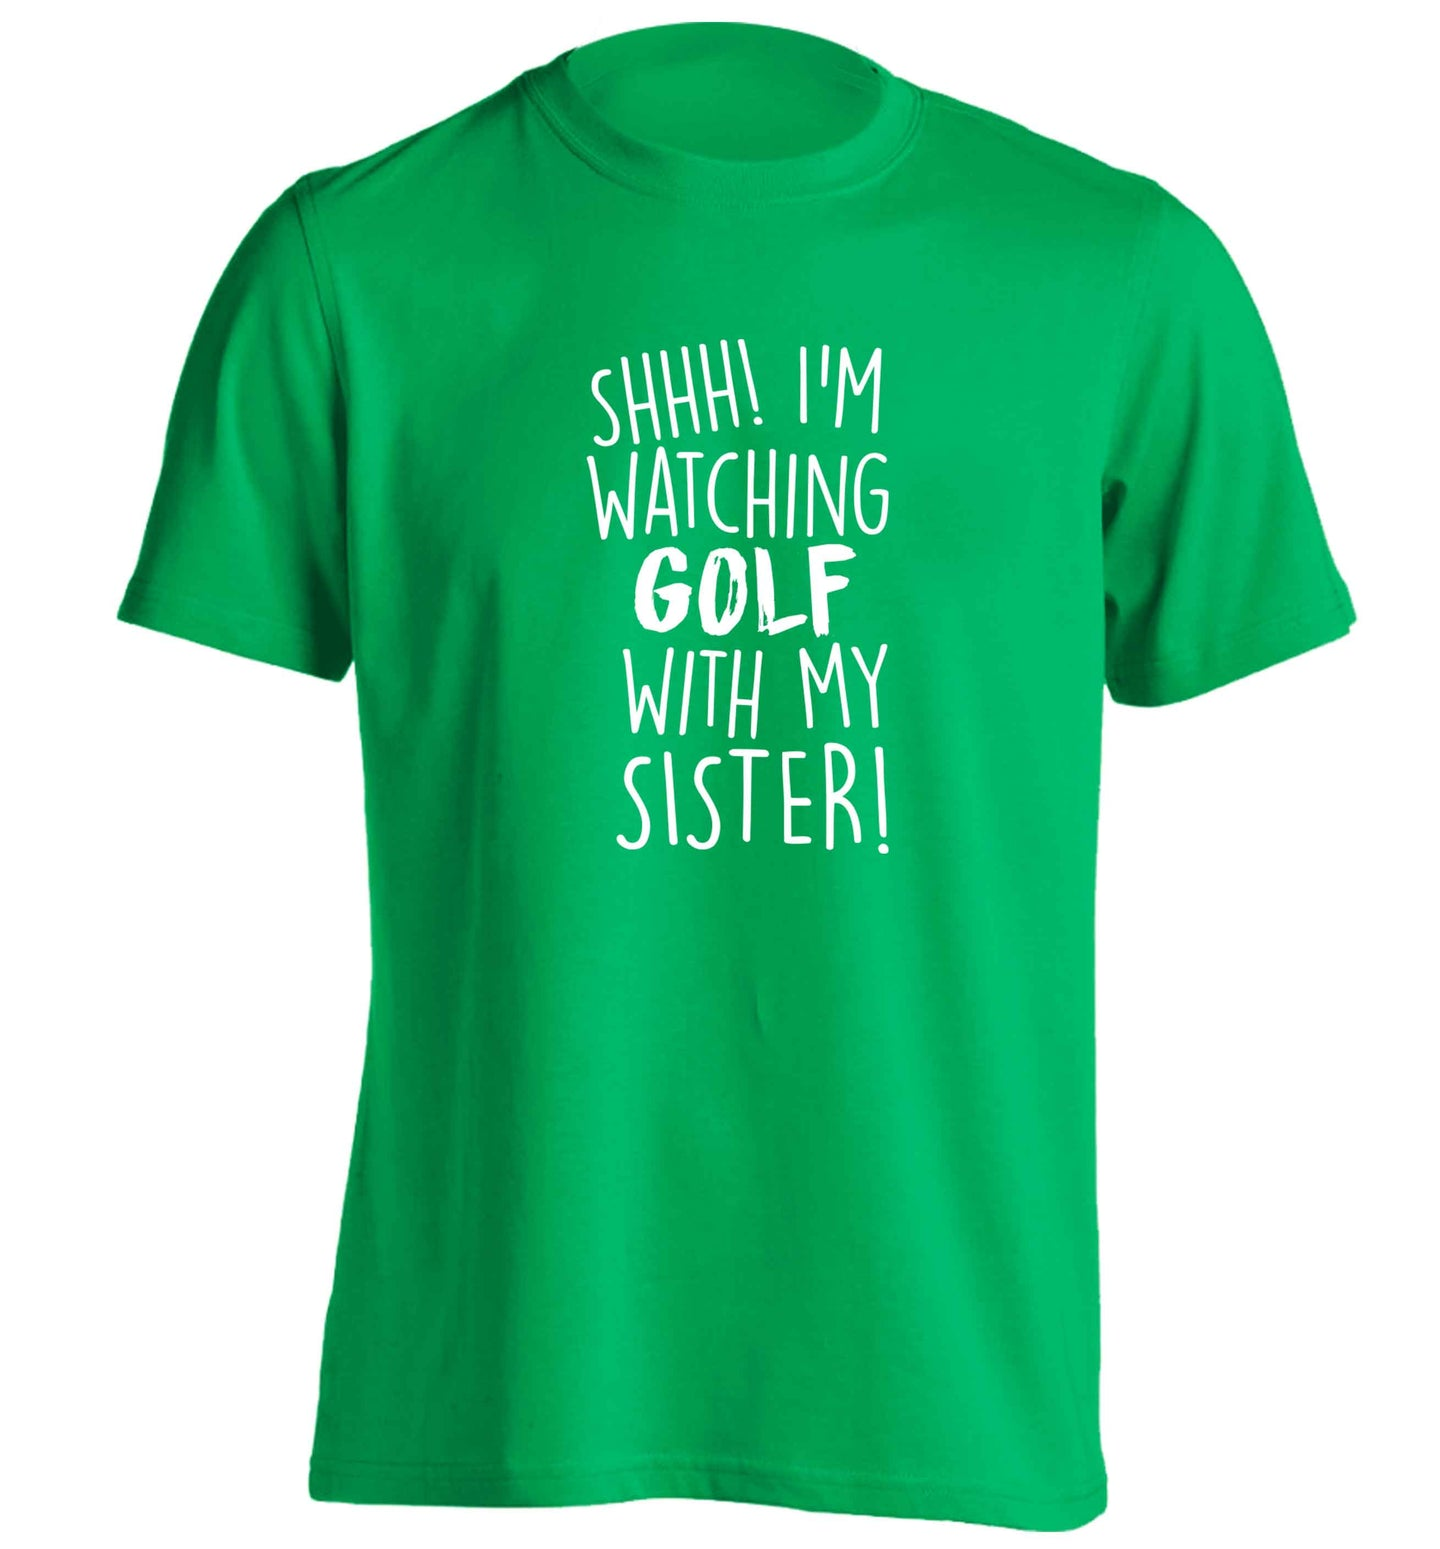 Shh I'm watching golf with my sister adults unisex green Tshirt 2XL